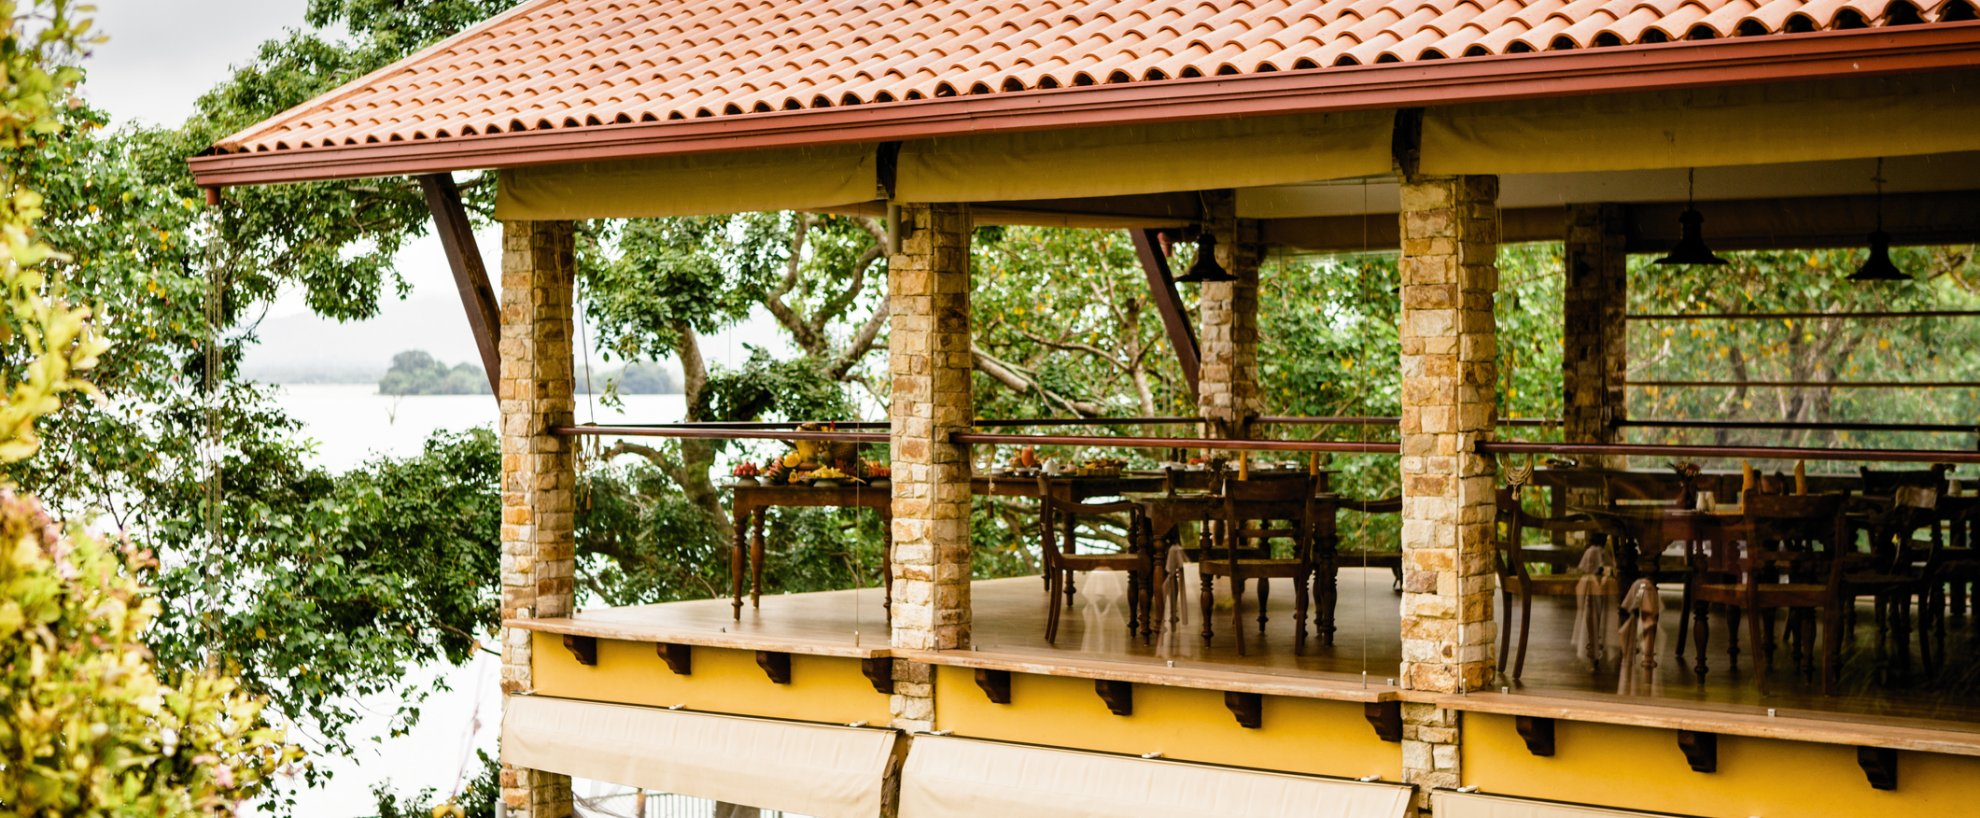 Sri Lanka Thaulle Resort Restaurant